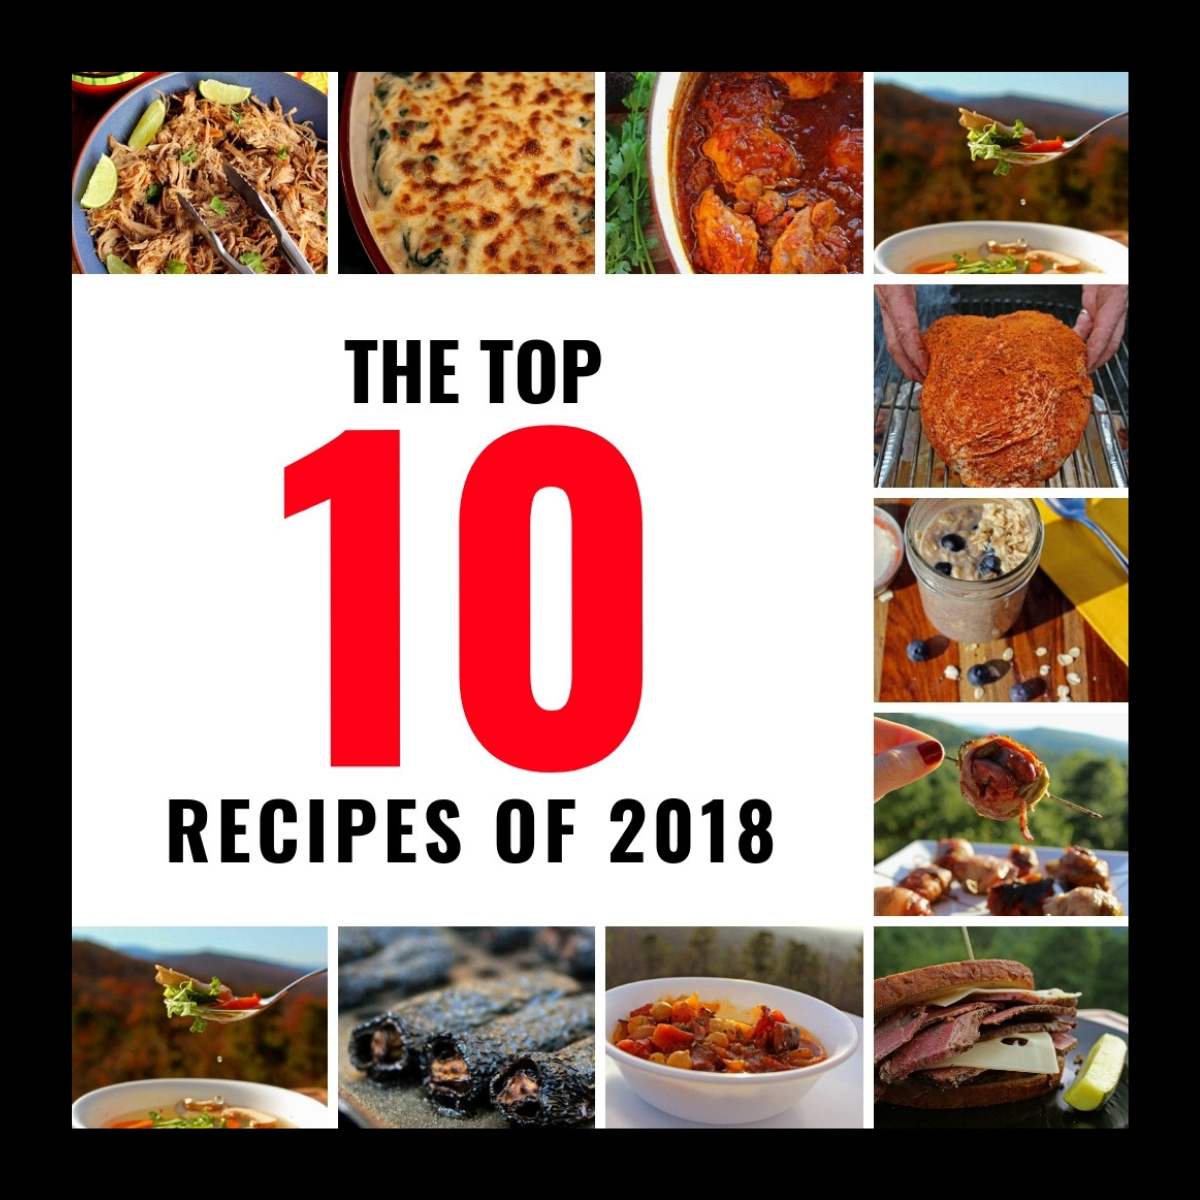 From smoky meat to overnight oats, we've rounded up the top 10 recipes of 2018. See what recipes had the biggest impact on your taste buds this year!